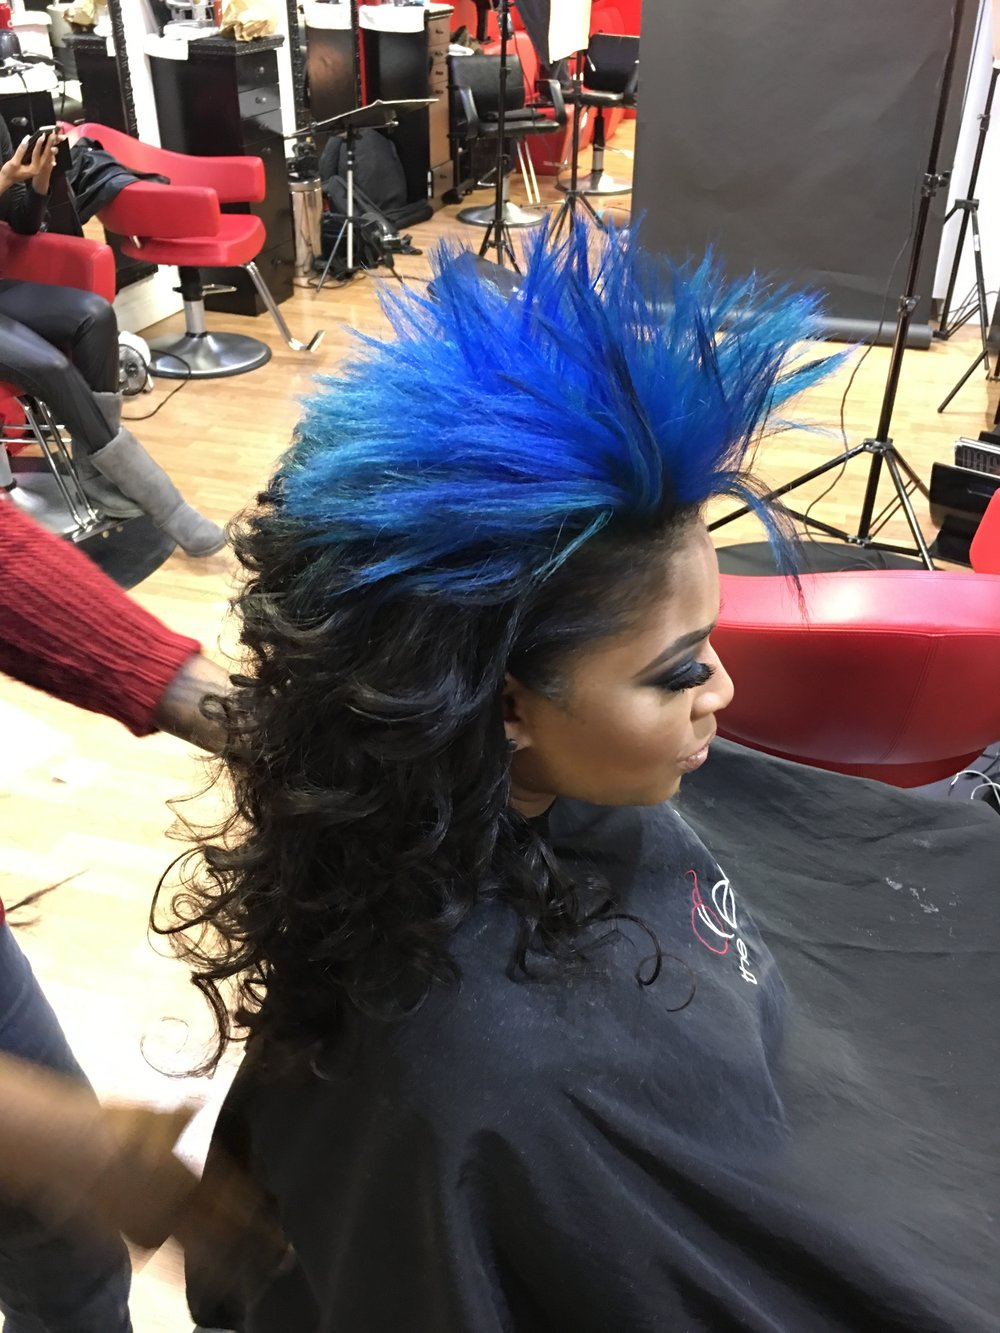 karimmuhammadphotography-hair-philly-model-newyork-bluehair.JPG